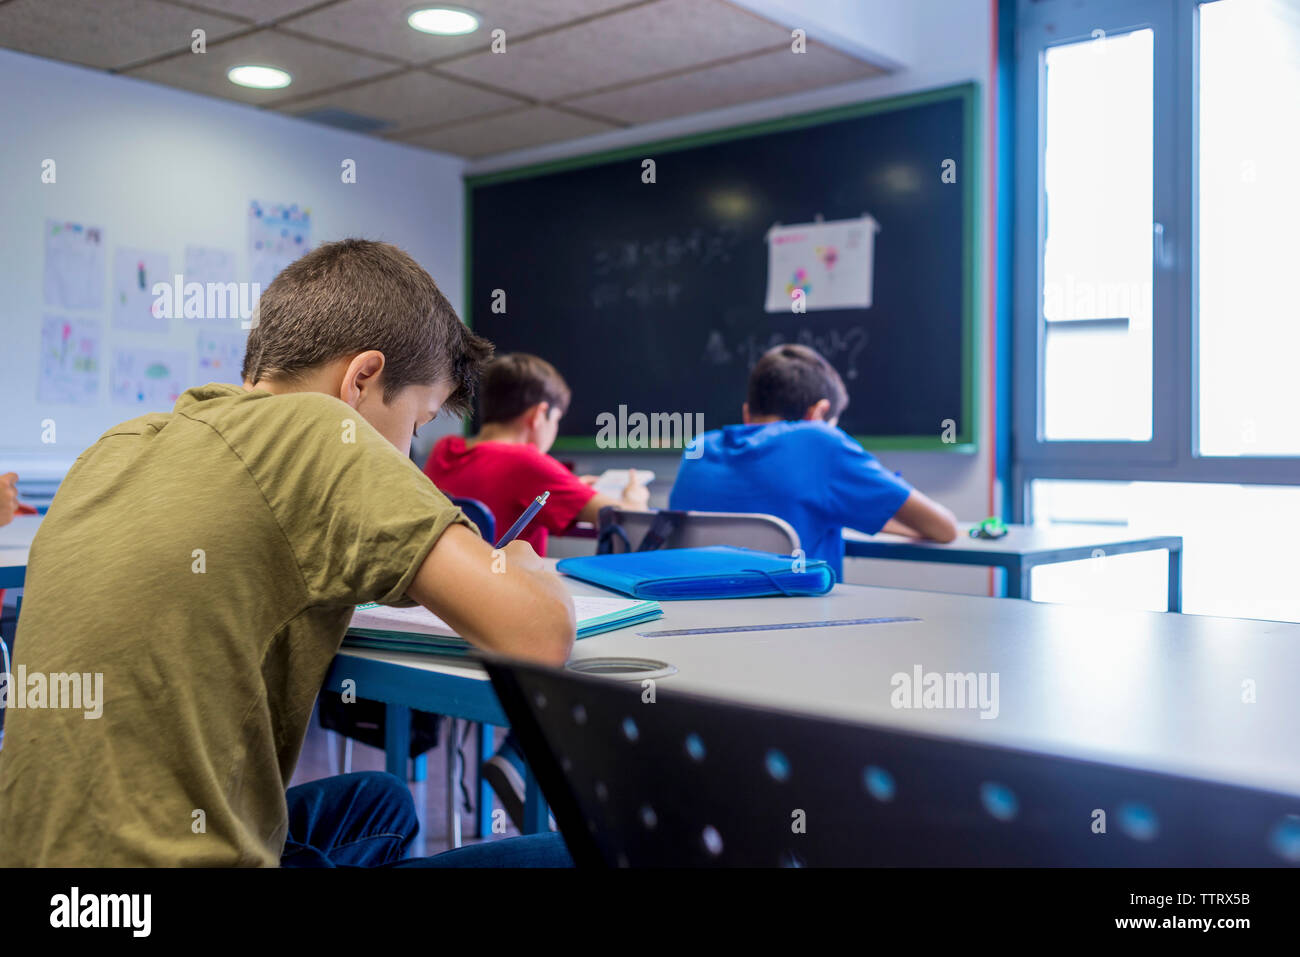 Schoolboys studying while sitting in classroom Stock Photo